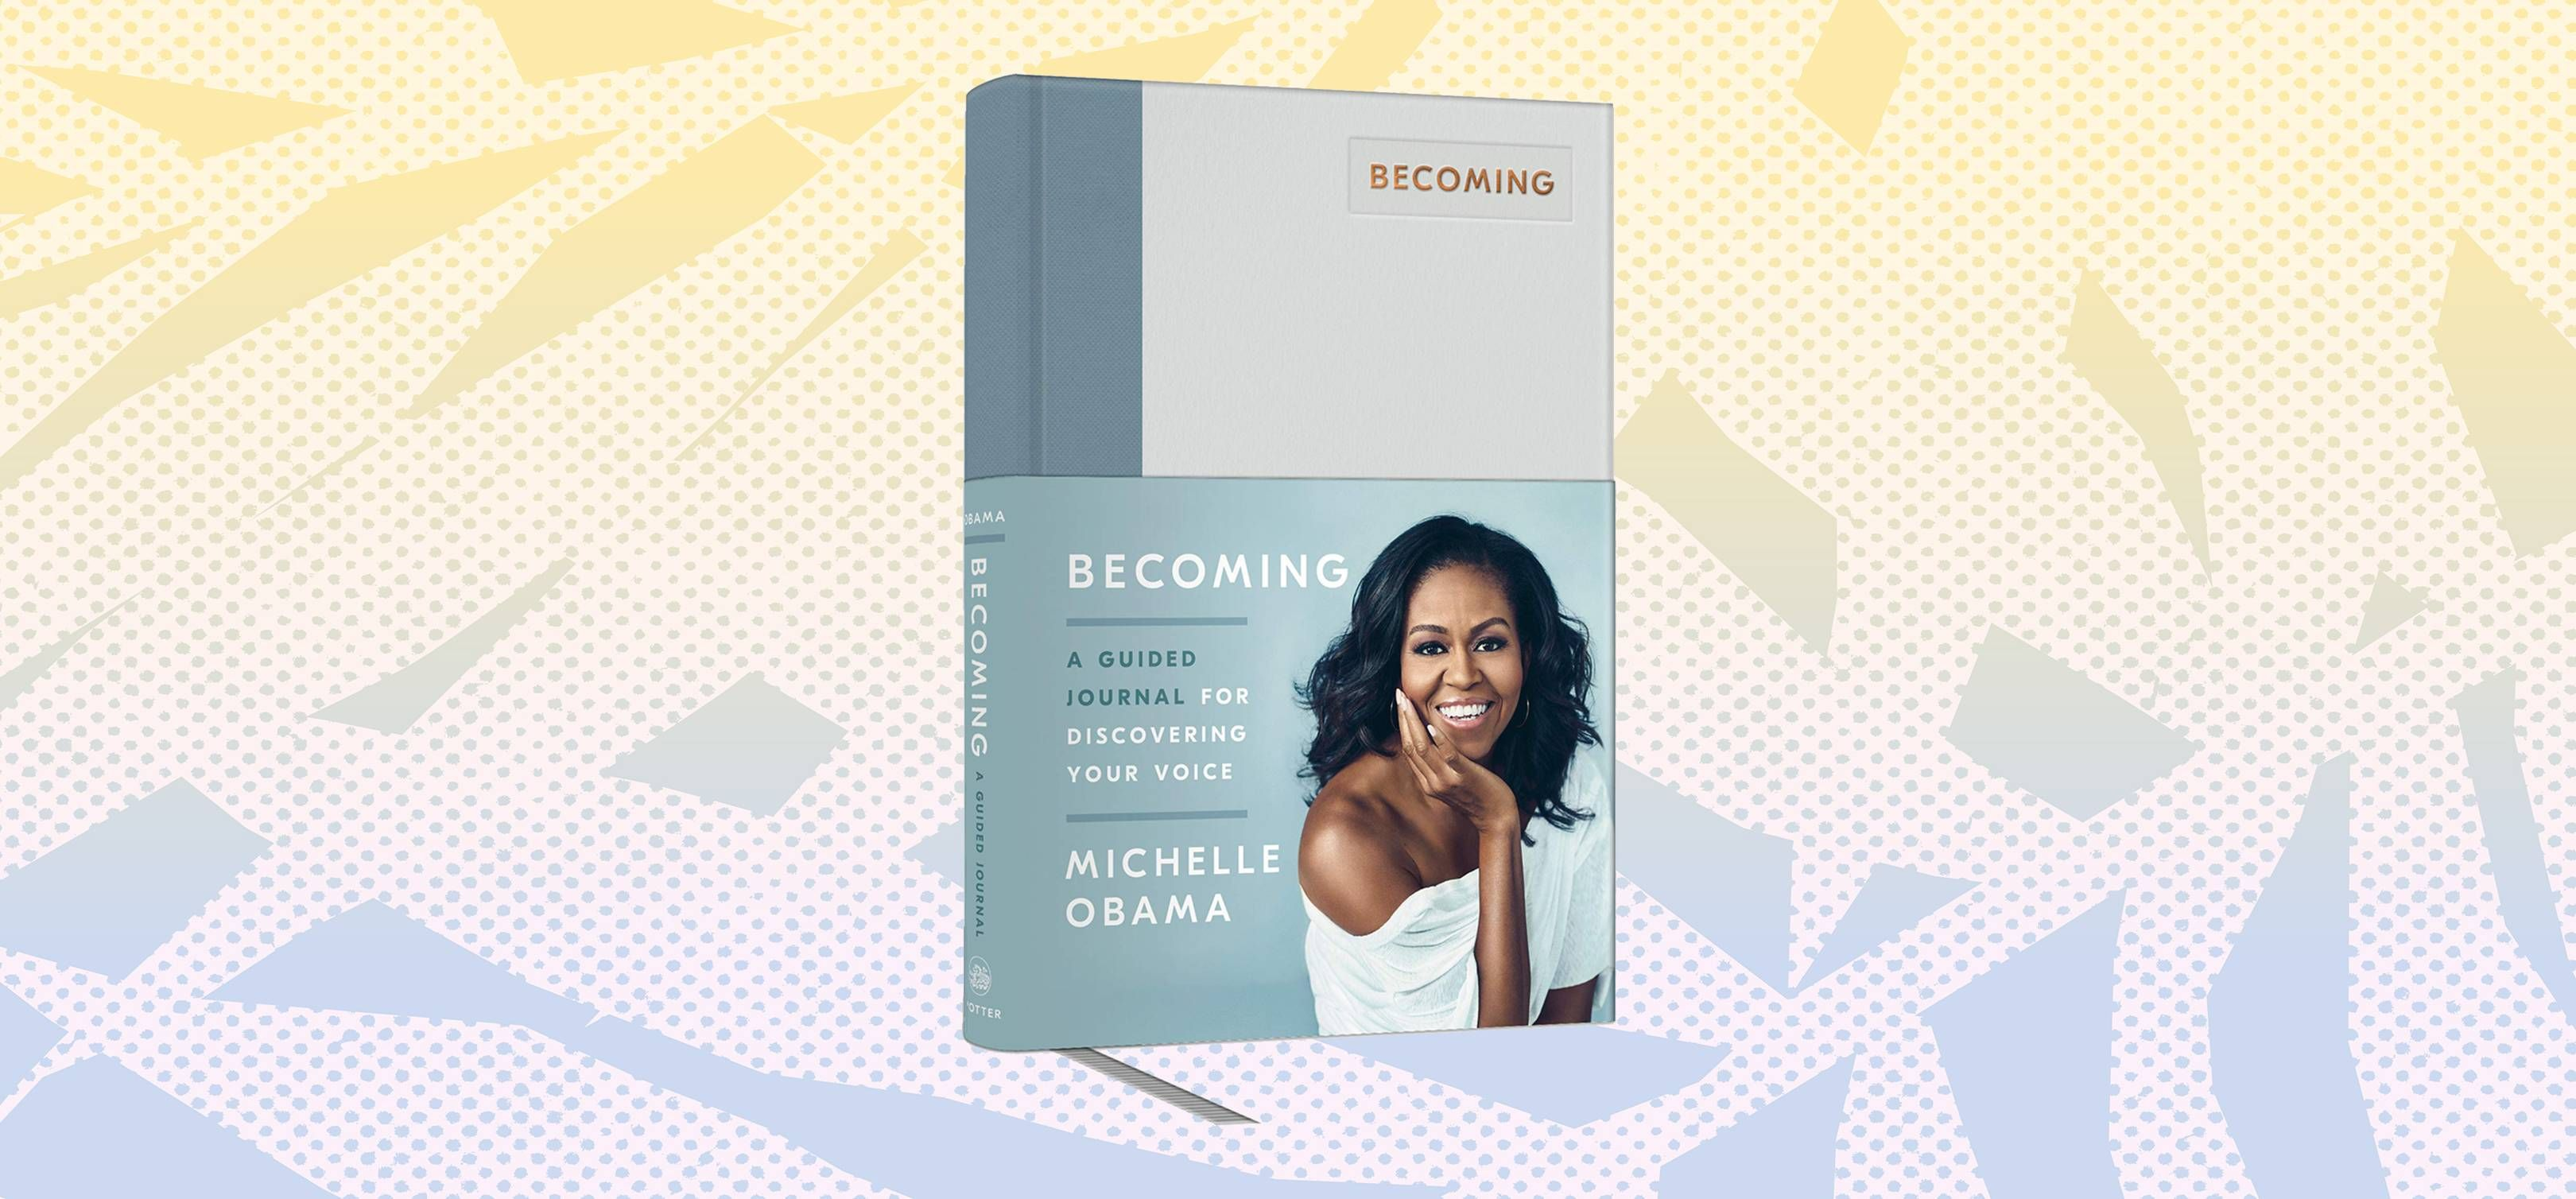 Michelle Obama S Empowering New Journal Will Help You